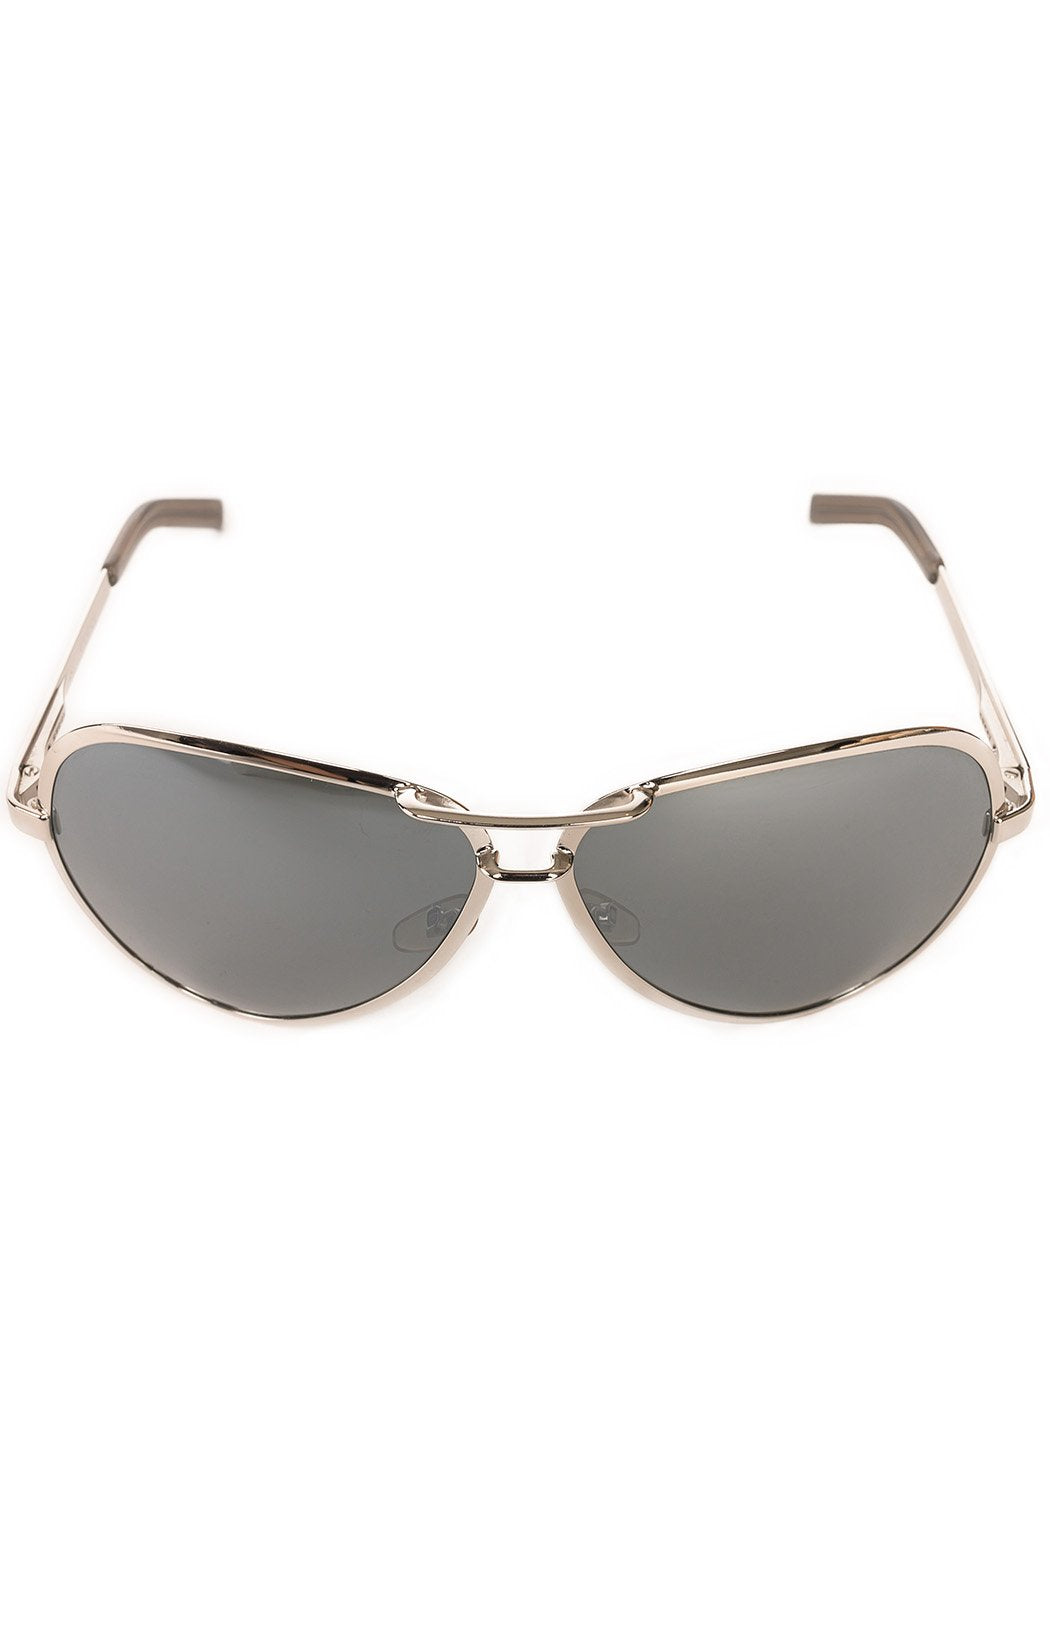 "Front view of GUCCI Sunglasses Size: 6"" W x 2.5"" H"